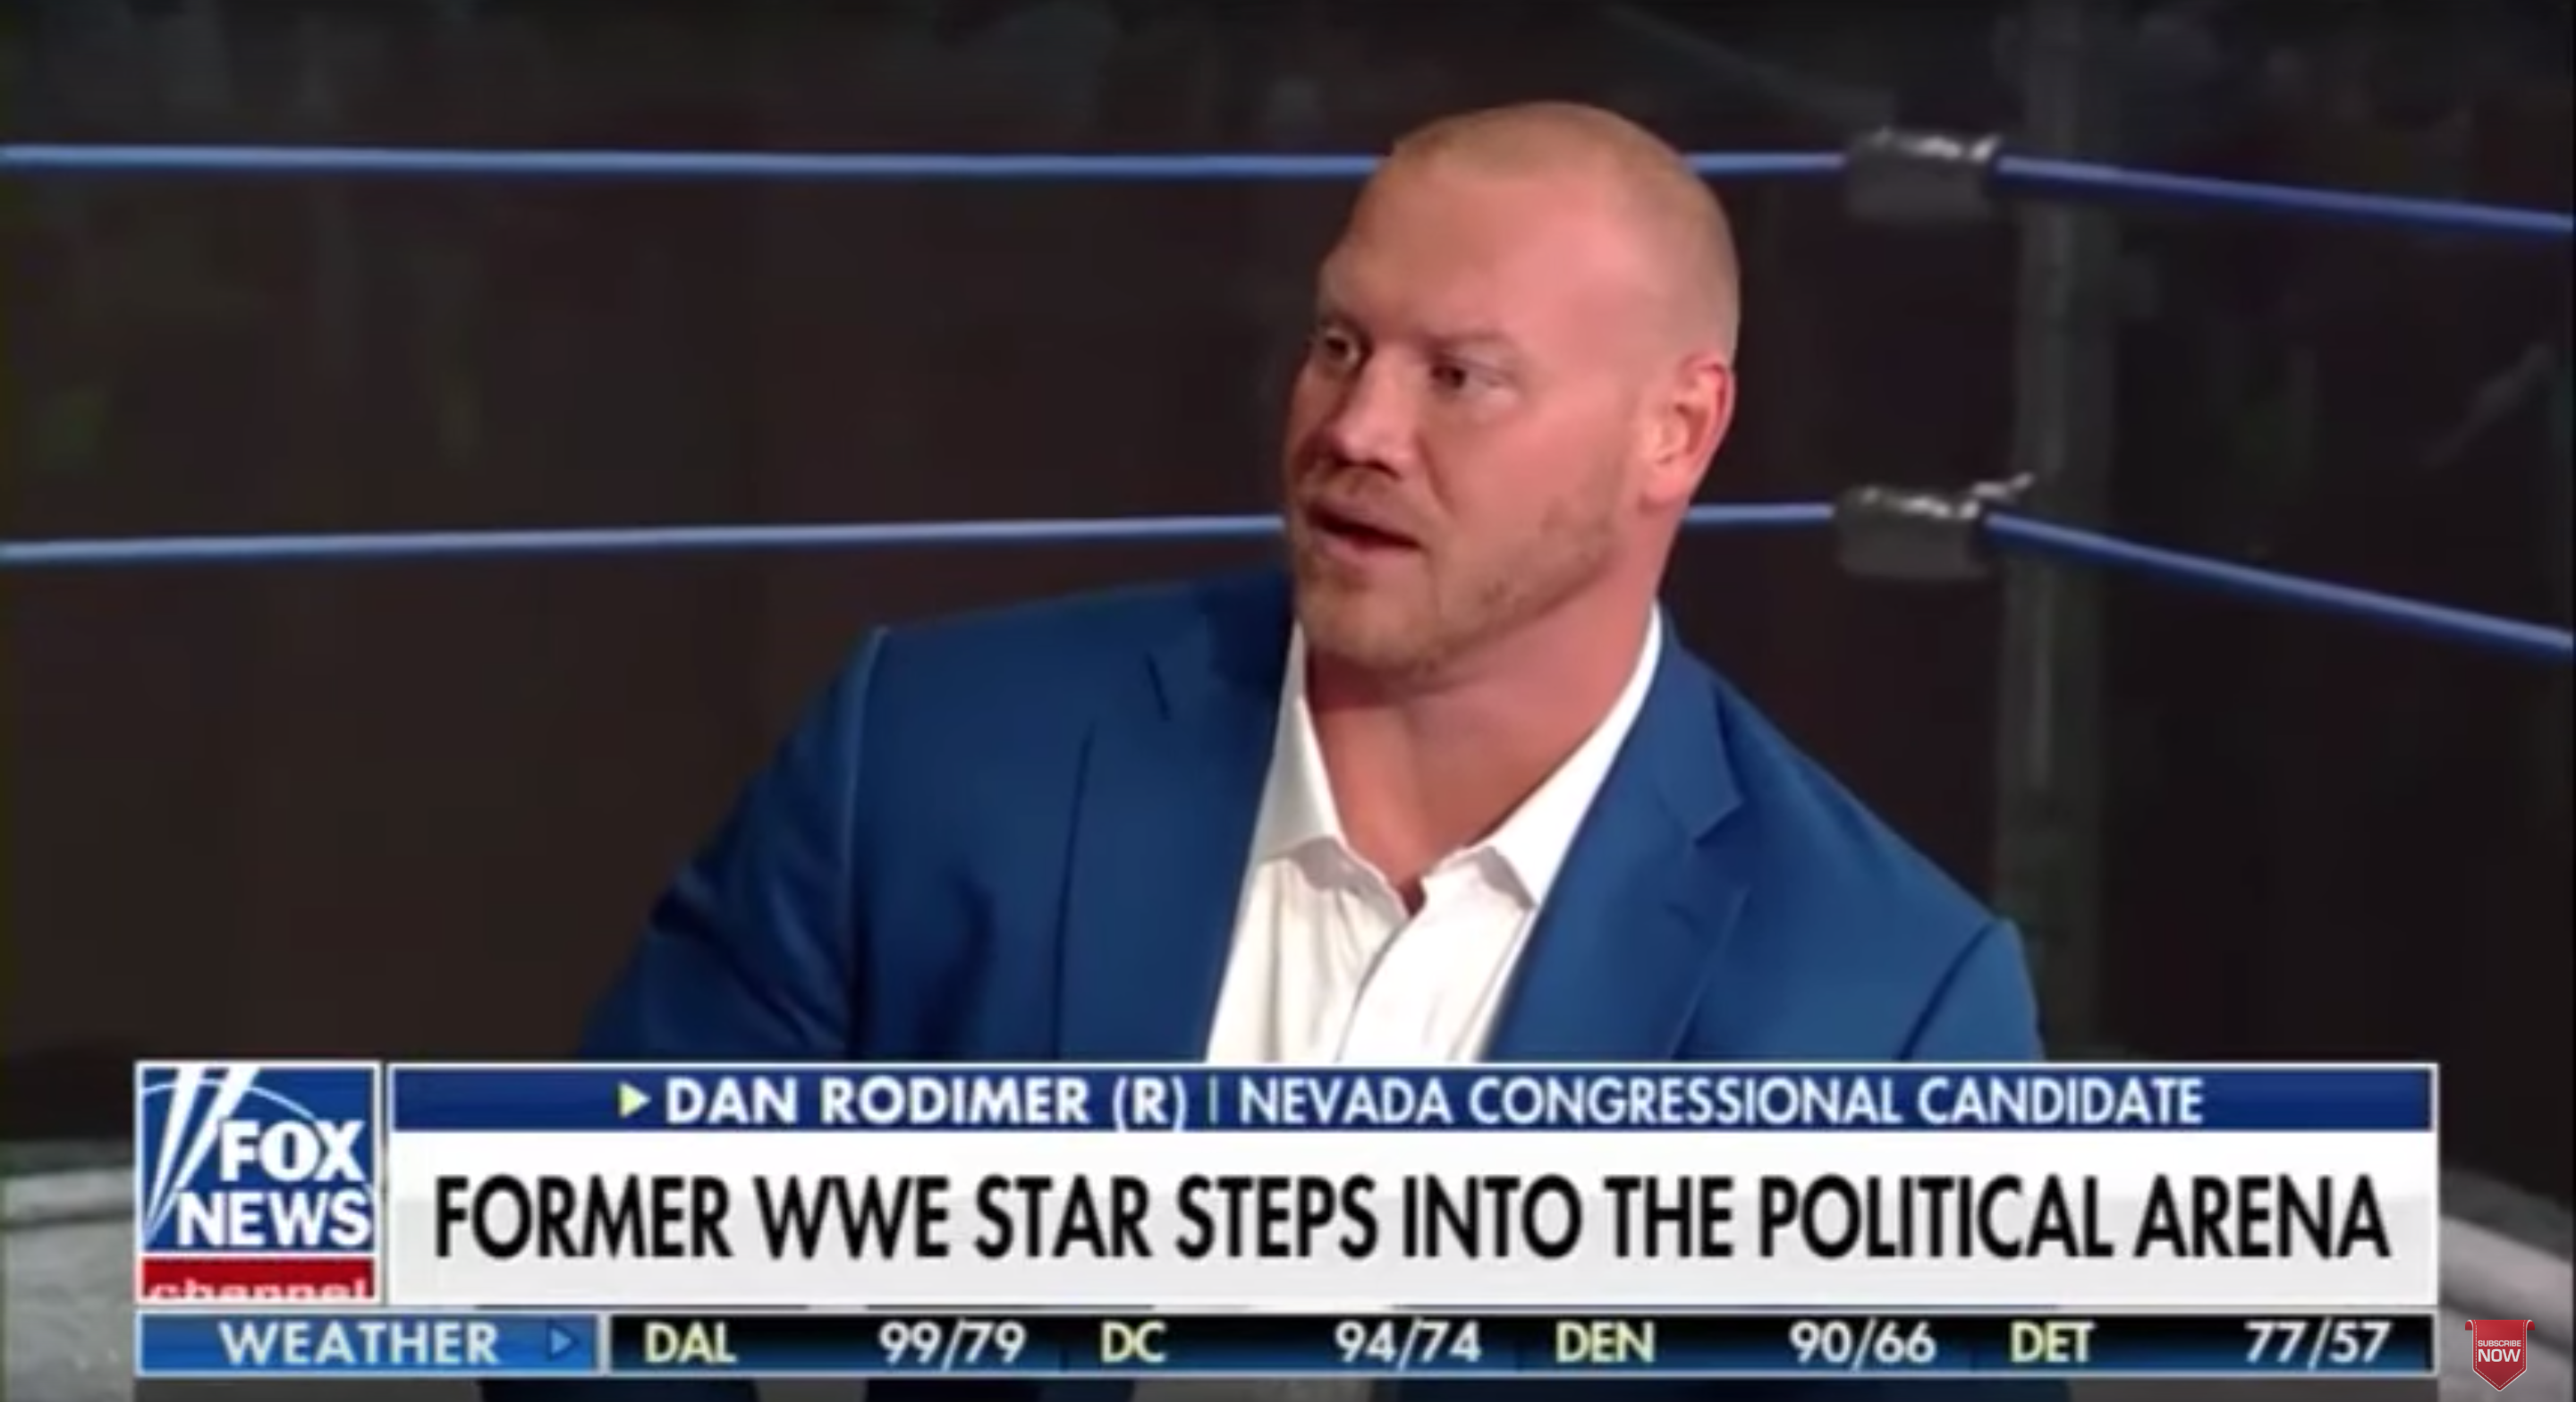 Former WWE star and congressional candidate wants to work with President Trump